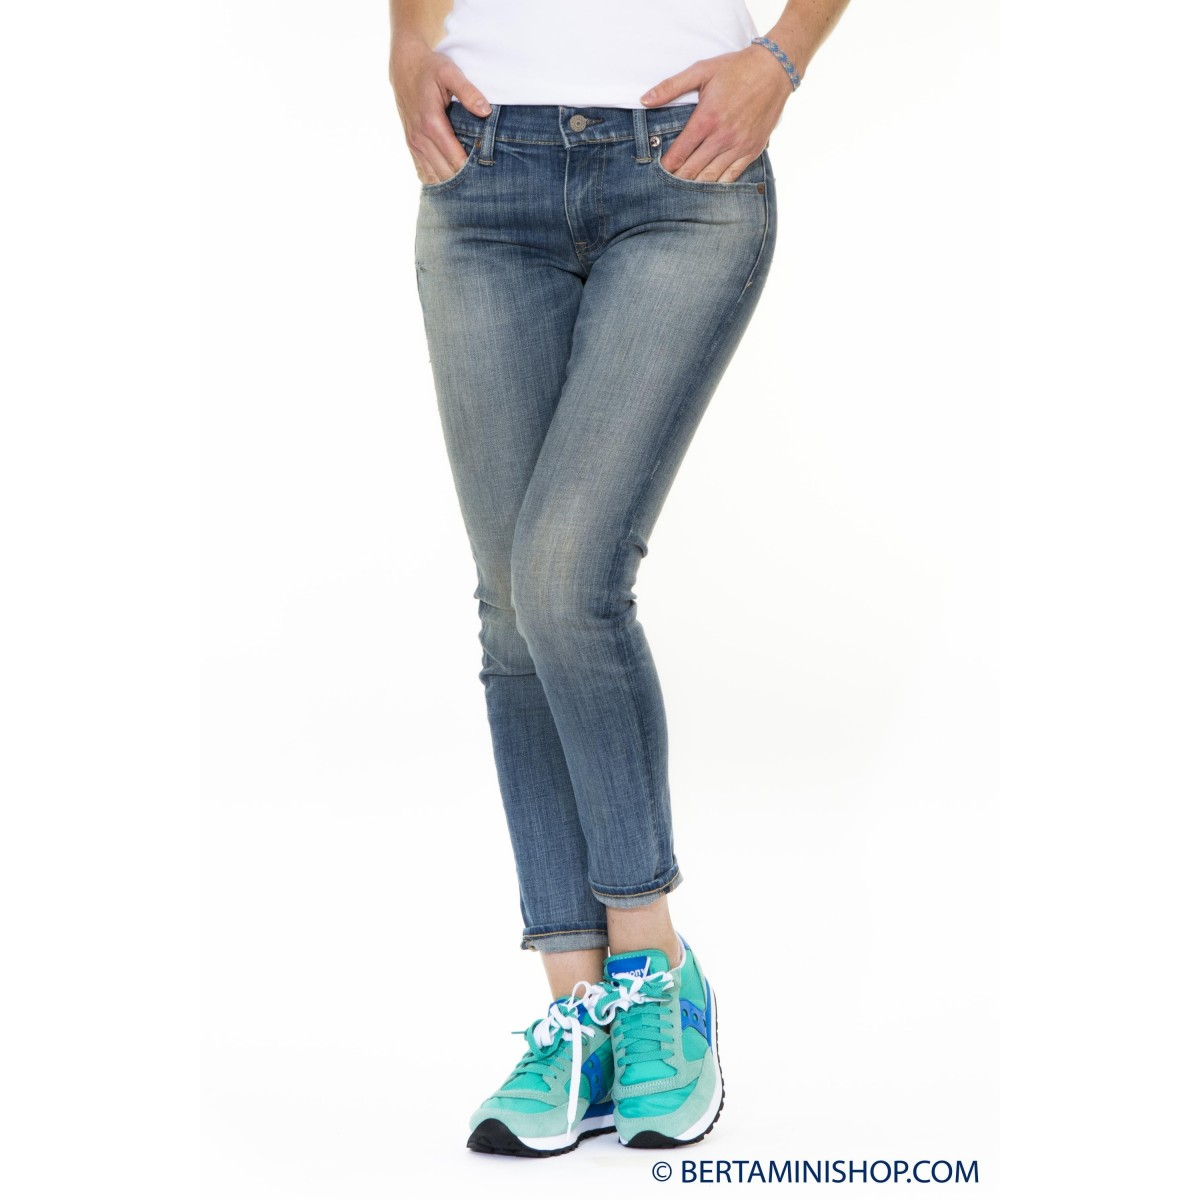 Jeans Ralph Lauren Donna - V60Ie189Be110 Jeans Strech Slim